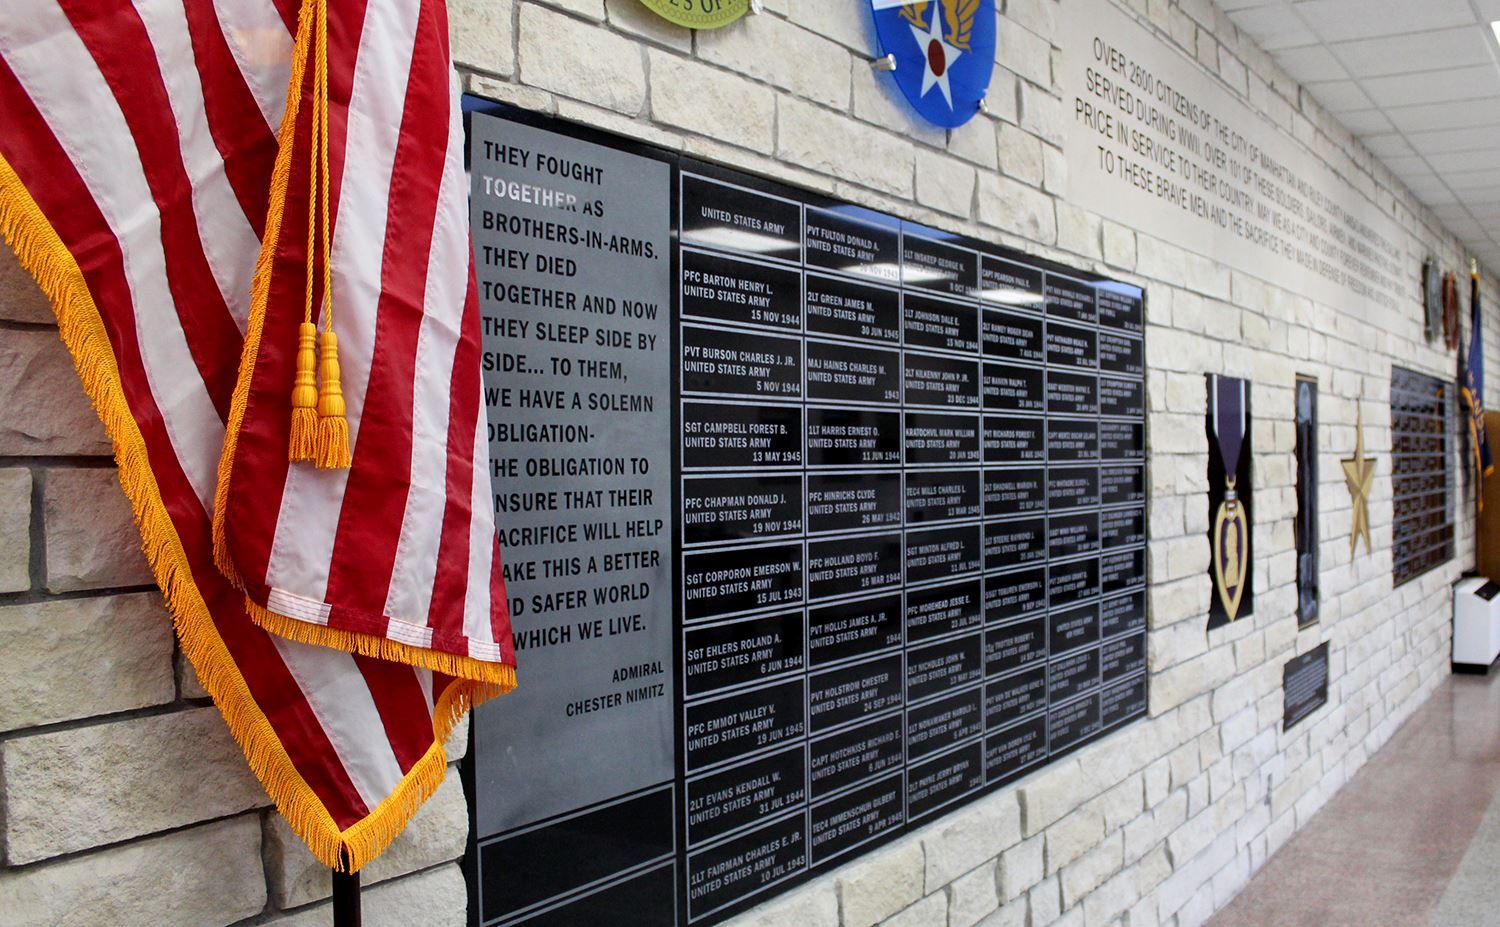 photo of the memorial wall outside Peace Memorial Auditorium